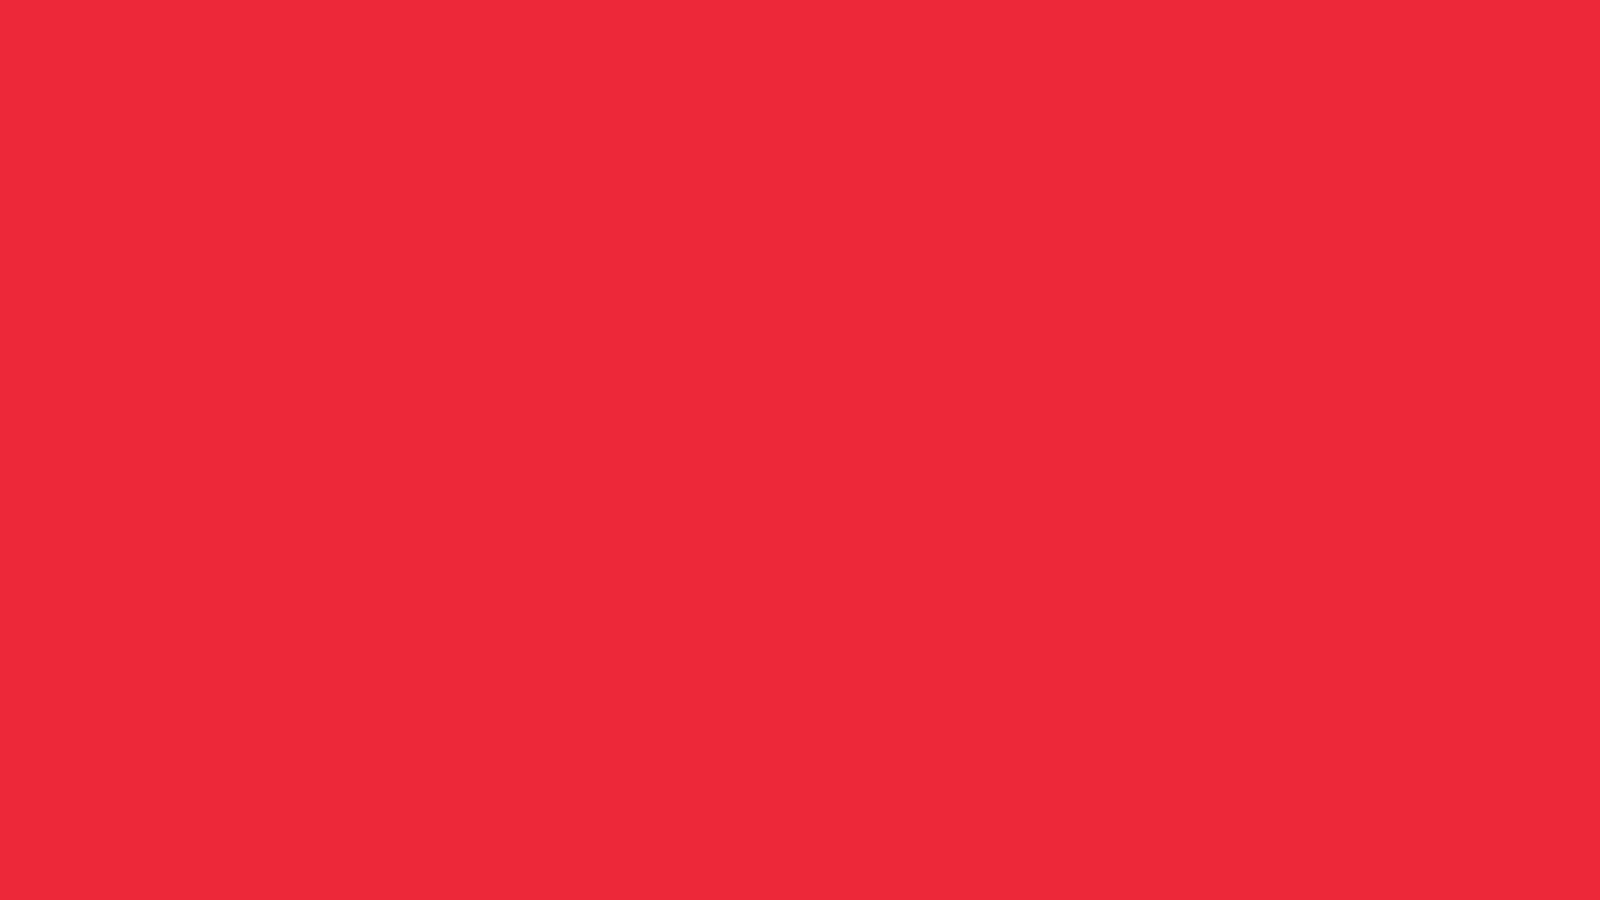 1600x900 Red Pantone Solid Color Background